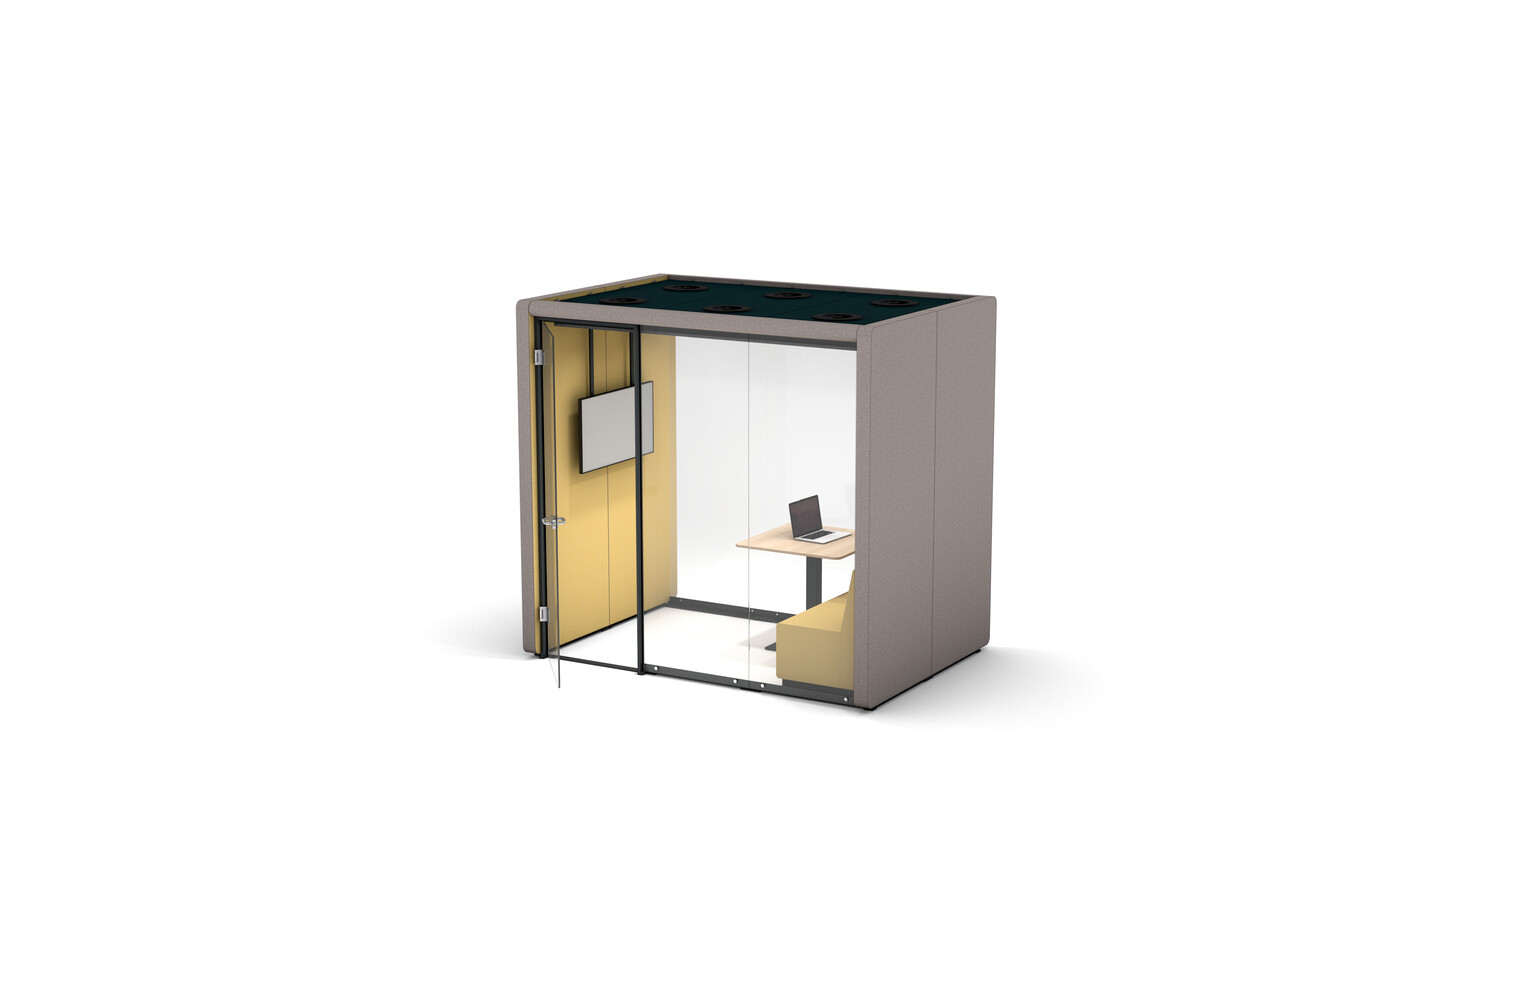 Gispen MOXX space in space 2 by 3 panels upholstered in grey and yellow with swivel door and JUNA trainbench and KOLM table front right view